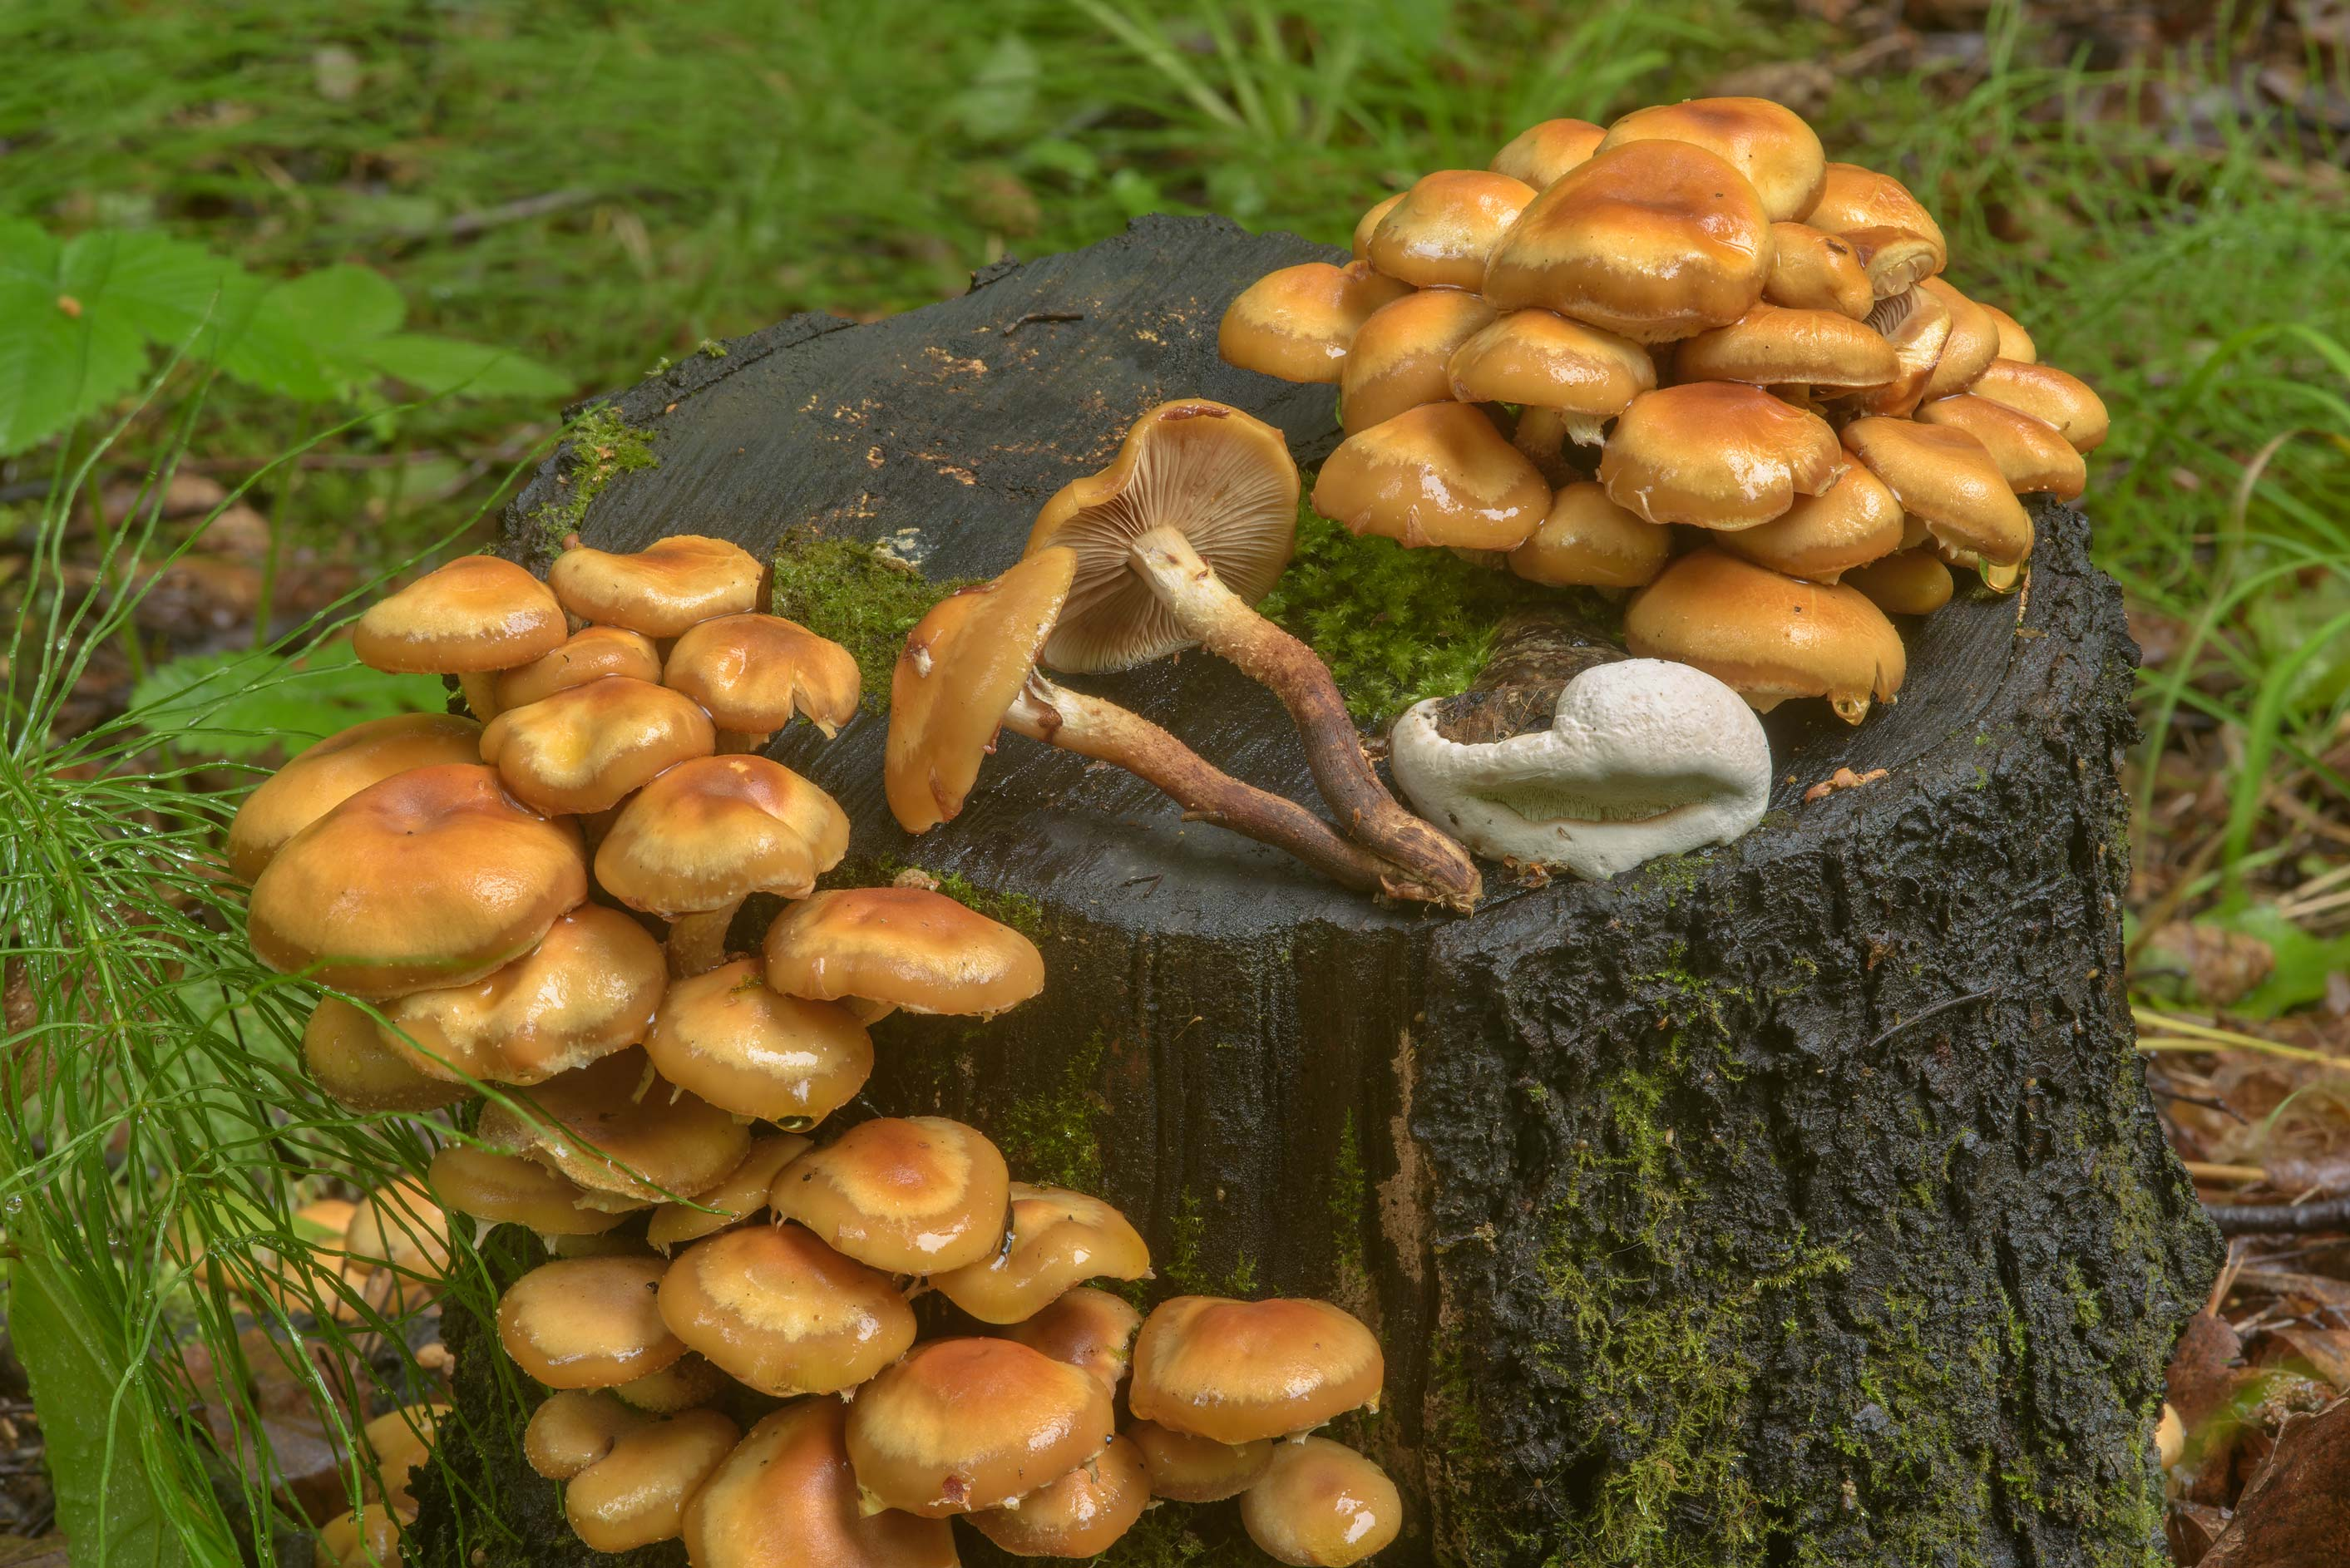 Sheathed woodtuft mushrooms (Kuehneromyces...a suburb of St.Petersburg, Russia